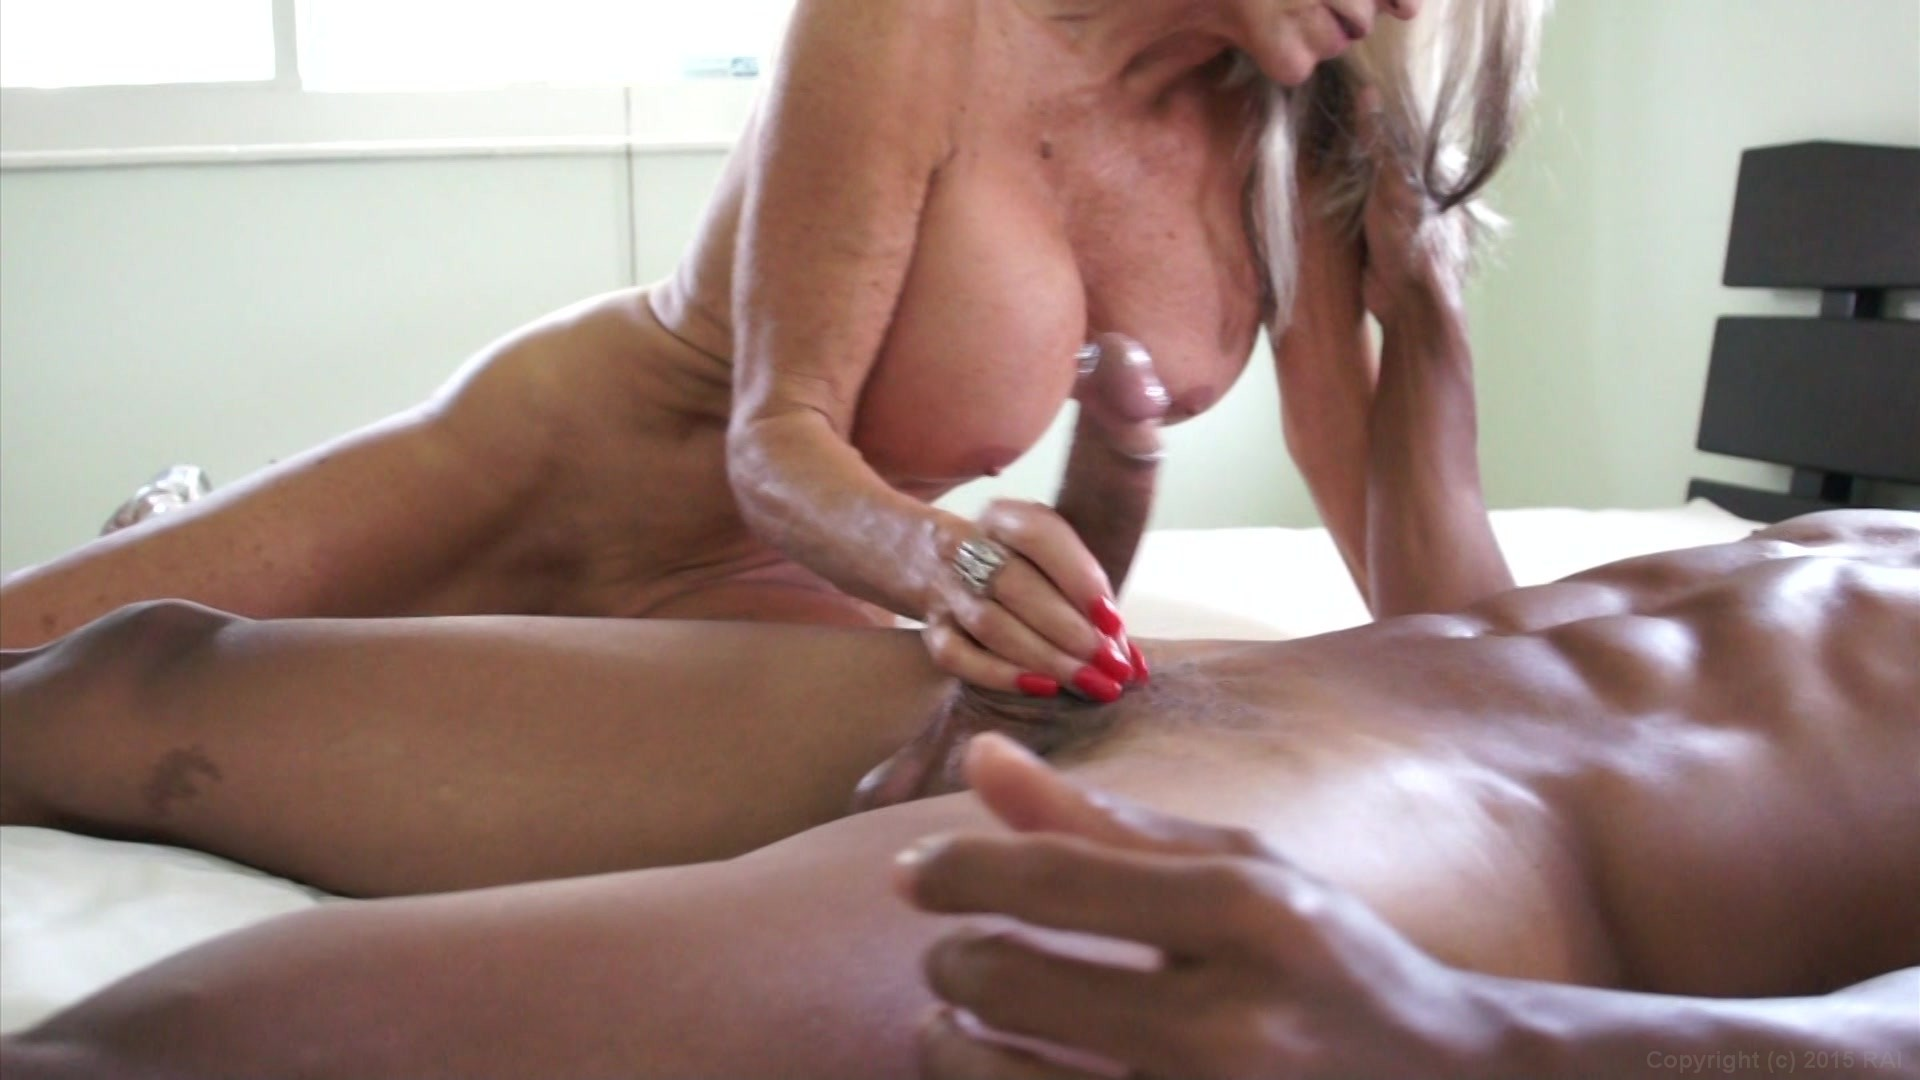 Milf leilani lei meets bbc big max - 1 part 4